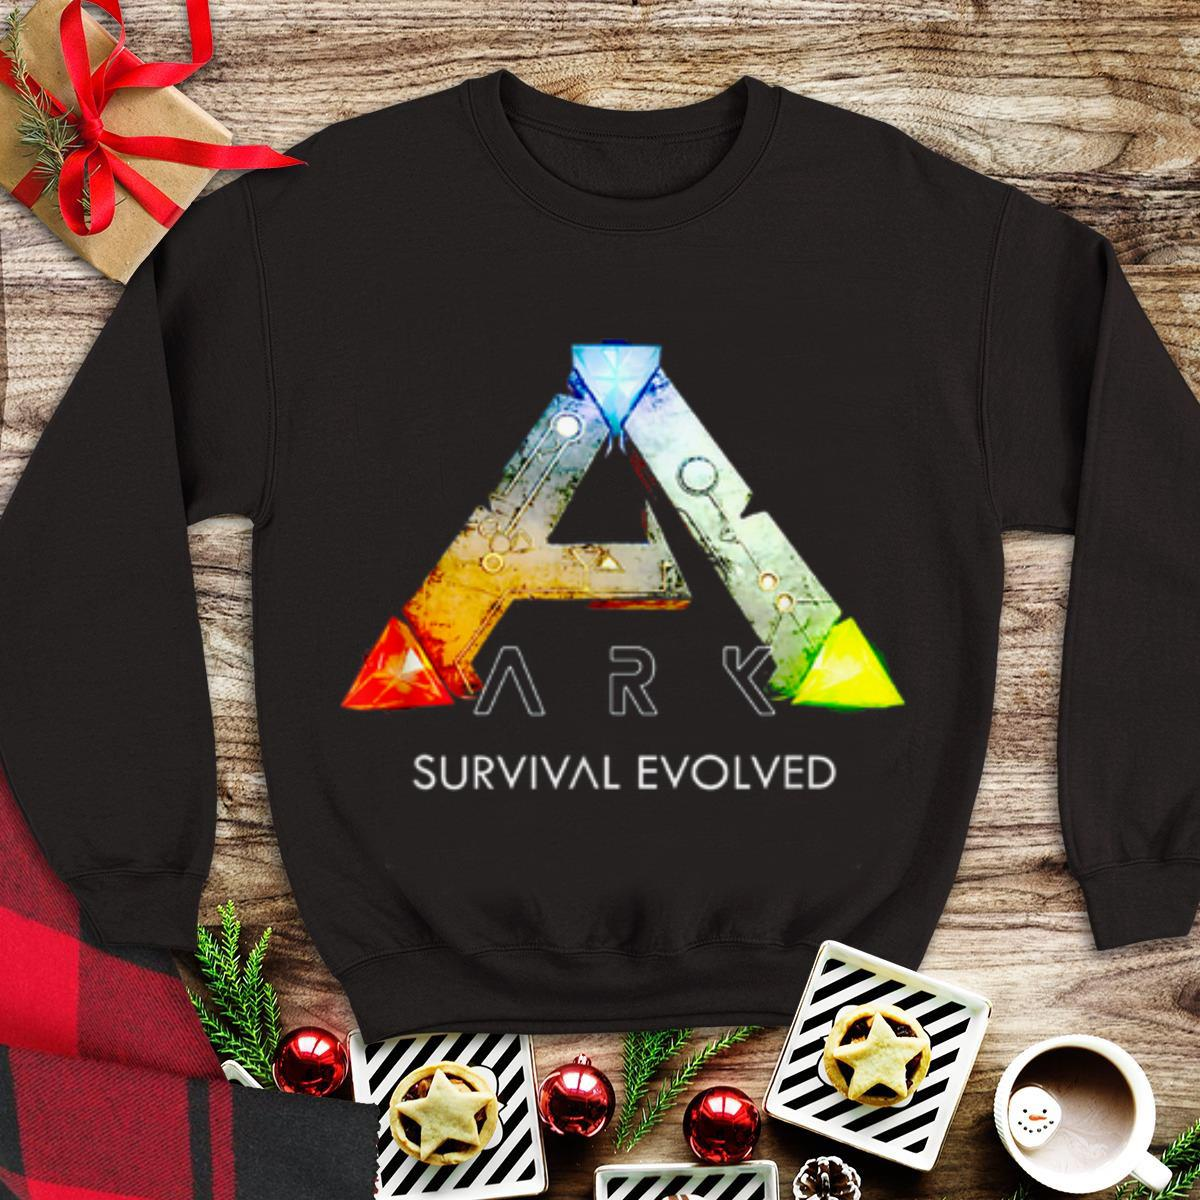 Awesome Ark Survial Evolved Logo shirt 1 - Awesome Ark Survial Evolved Logo shirt